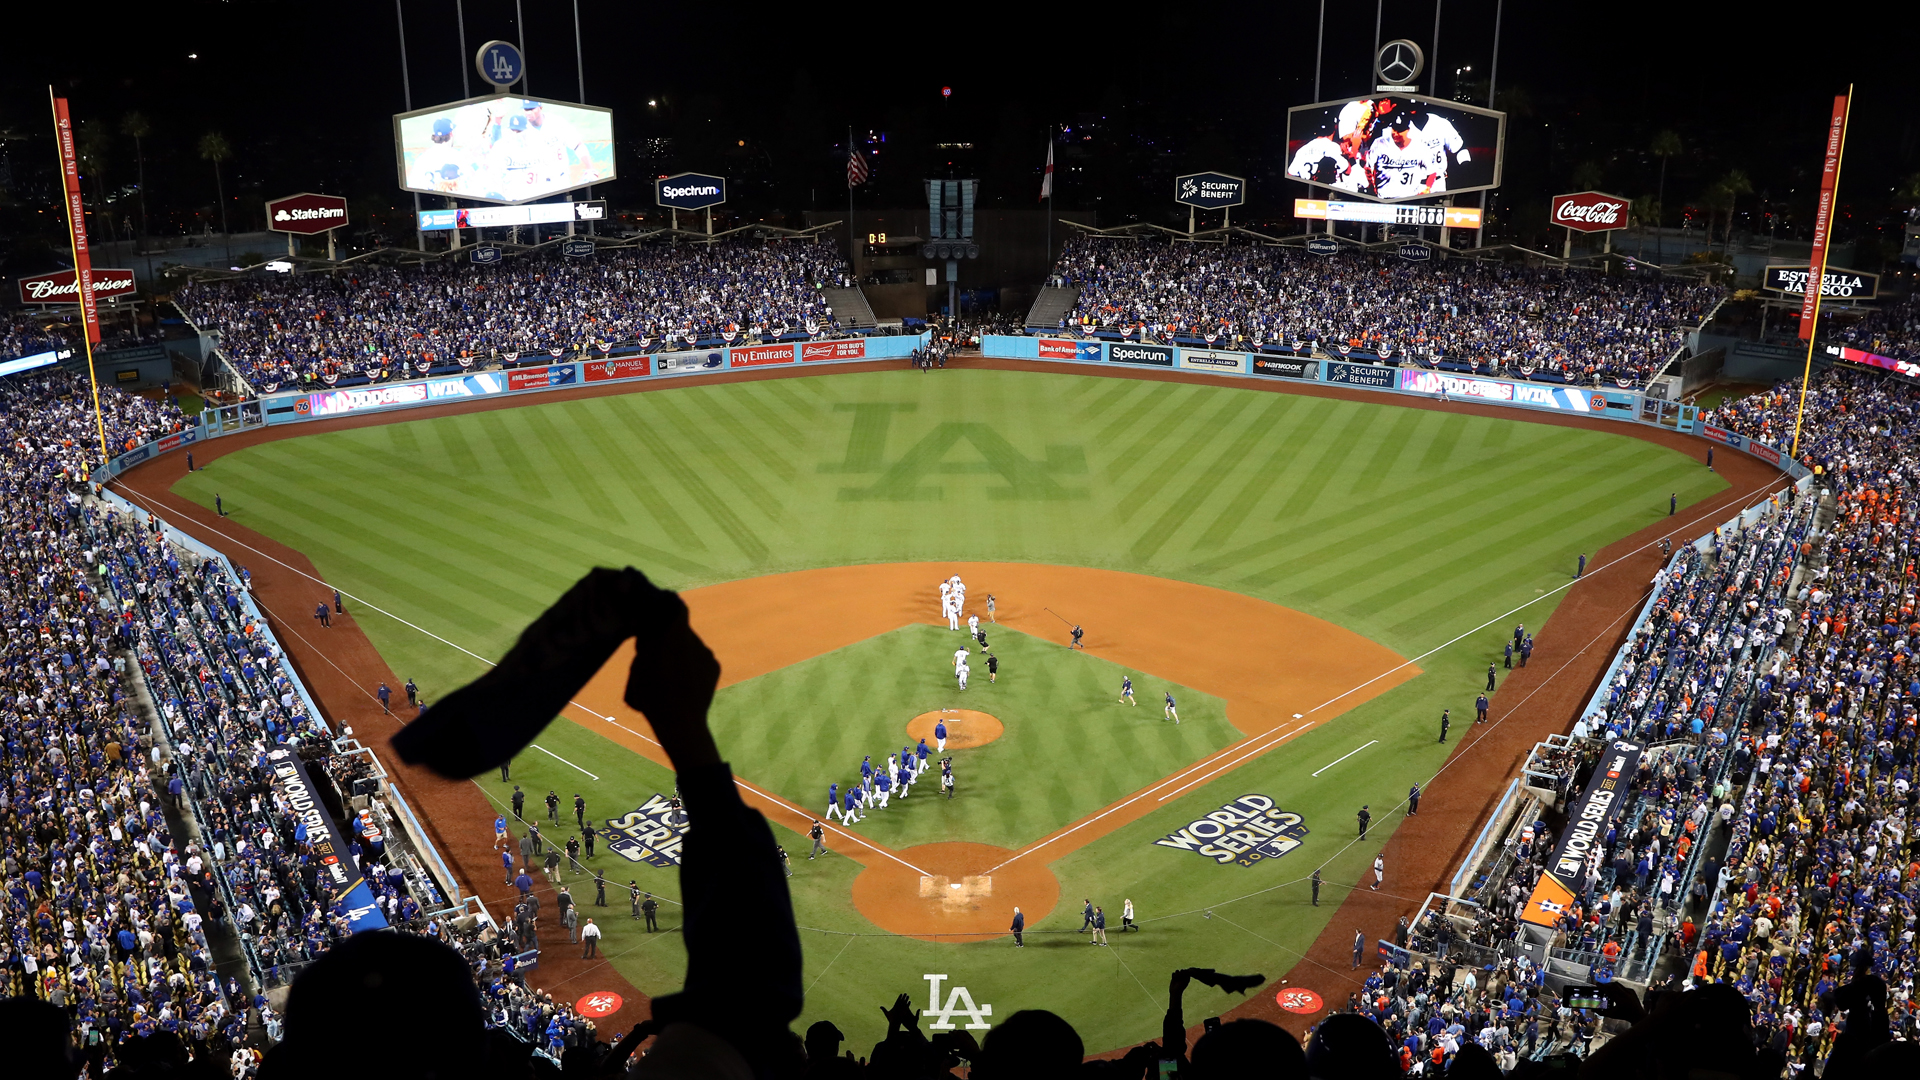 The Dodgers celebrate after defeating the Houston Astros 3-1 in game six of the 2017 World Series at Dodger Stadium on October 31, 2017 in Los Angeles. (Credit: Joe Scarnici/Getty Images)